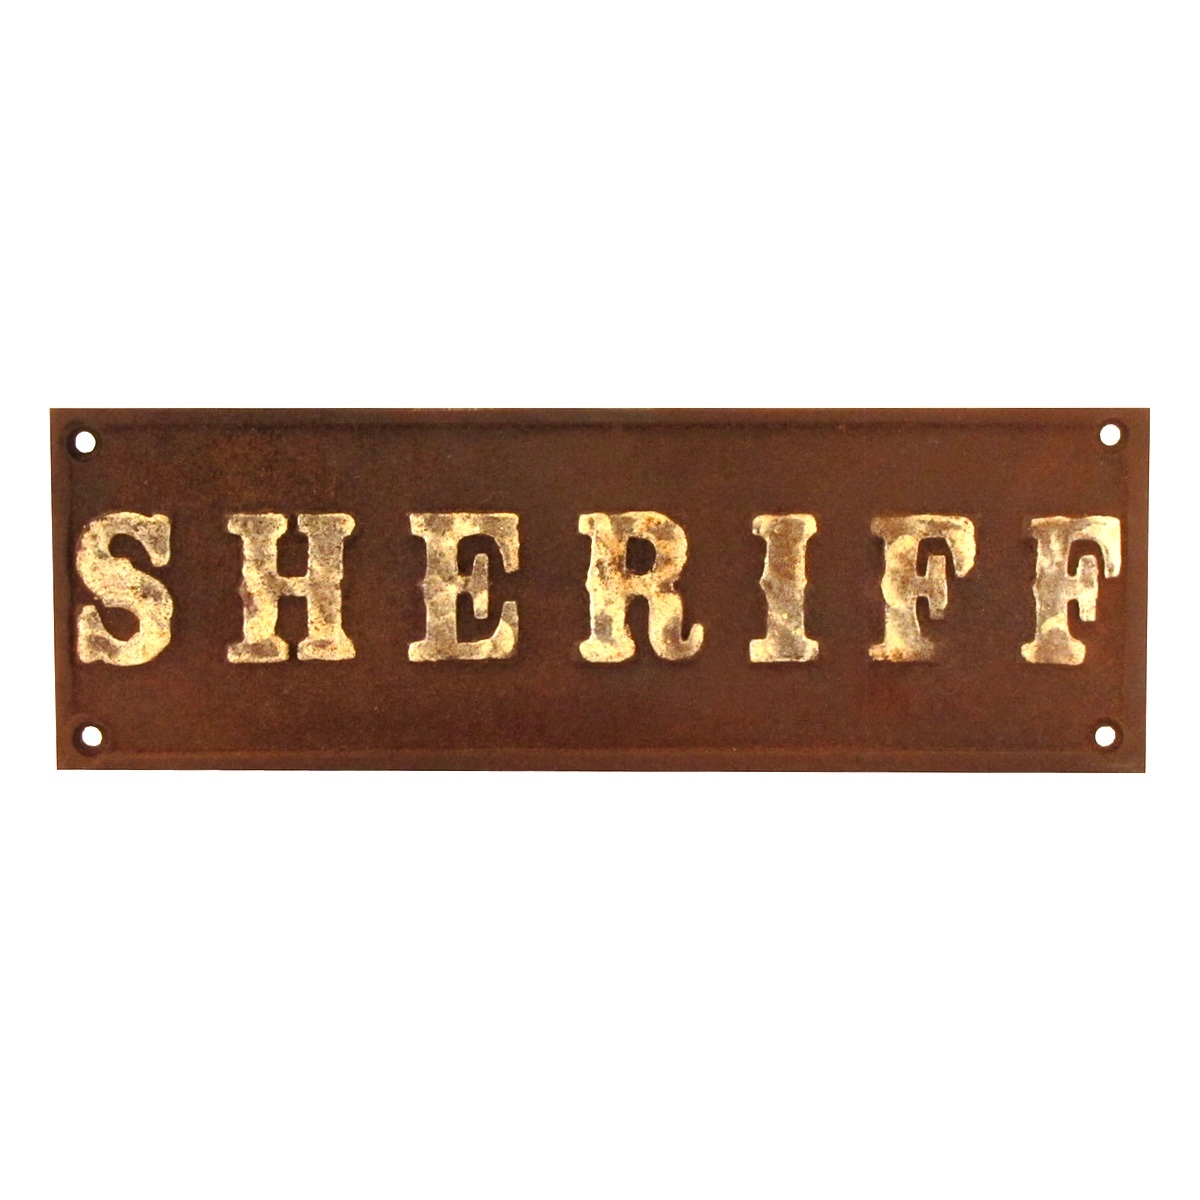 Cast Iron Sheriff Plaque Old West Hotel Saloon Style Sign Rustic Bar Cast Iron Sheriff Plaque Old West Hotel Saloon Style Sign Rustic Bar Wall Decor